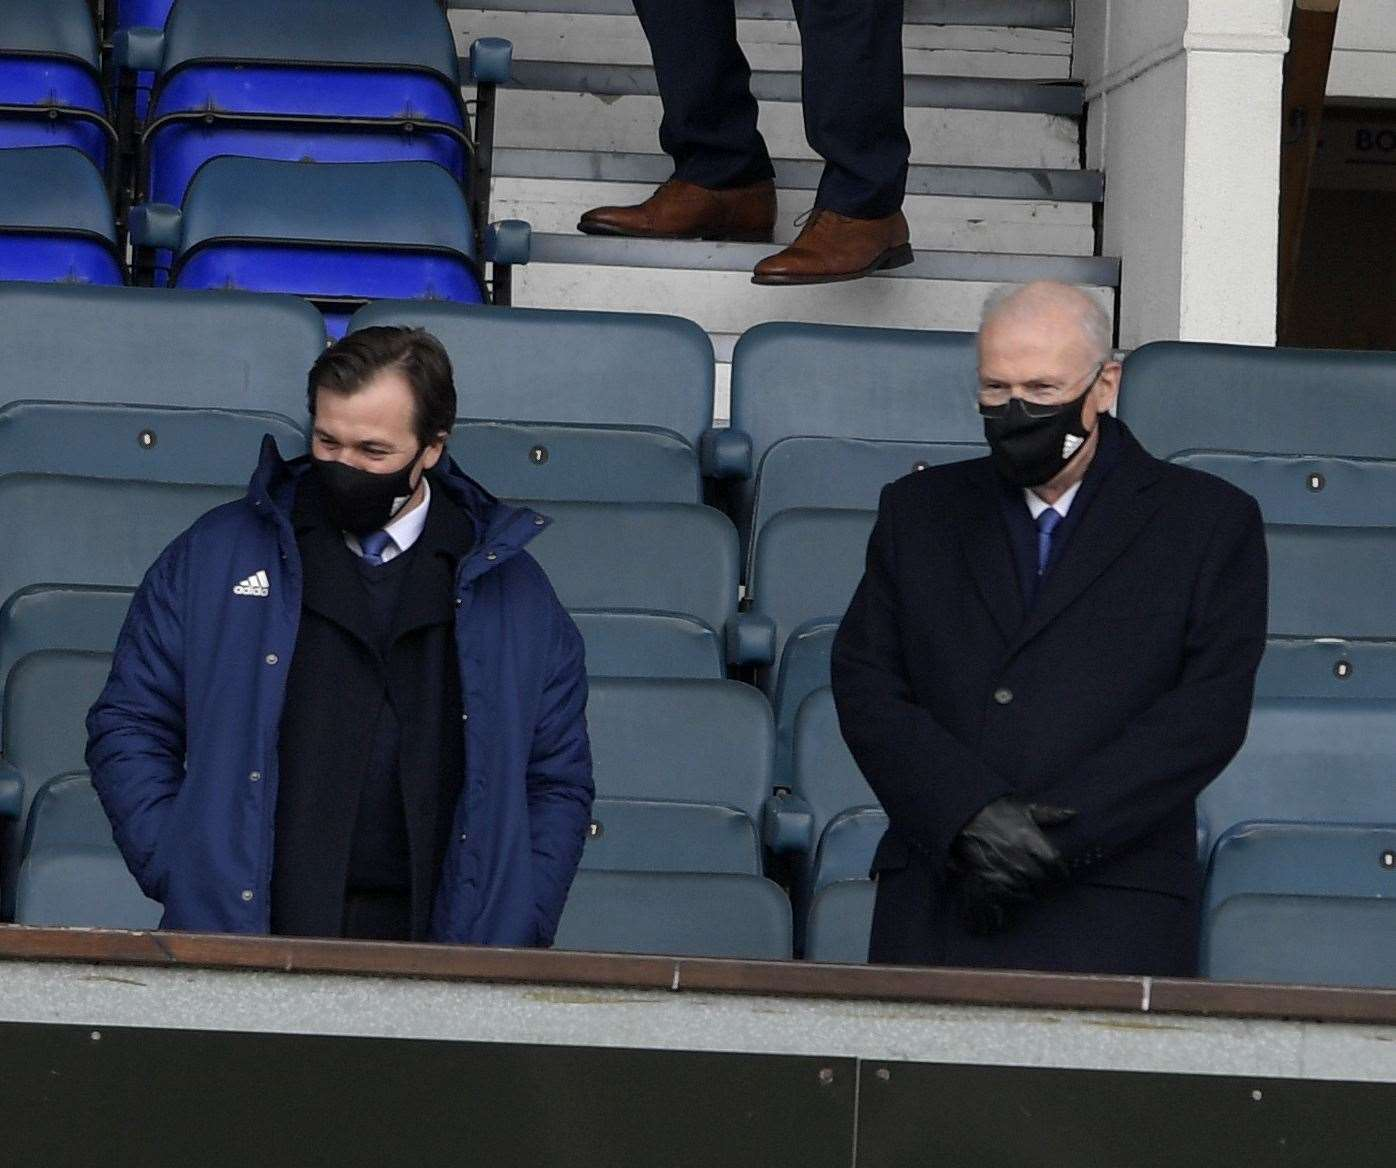 New Ipswich Town chairman Mike O'Leary (right) attended his first game at Portman Road since assuming the role on Saturday and next alongside Lee O'Neil, general manager of football operations and academy manager Picture: Barry Goodwin